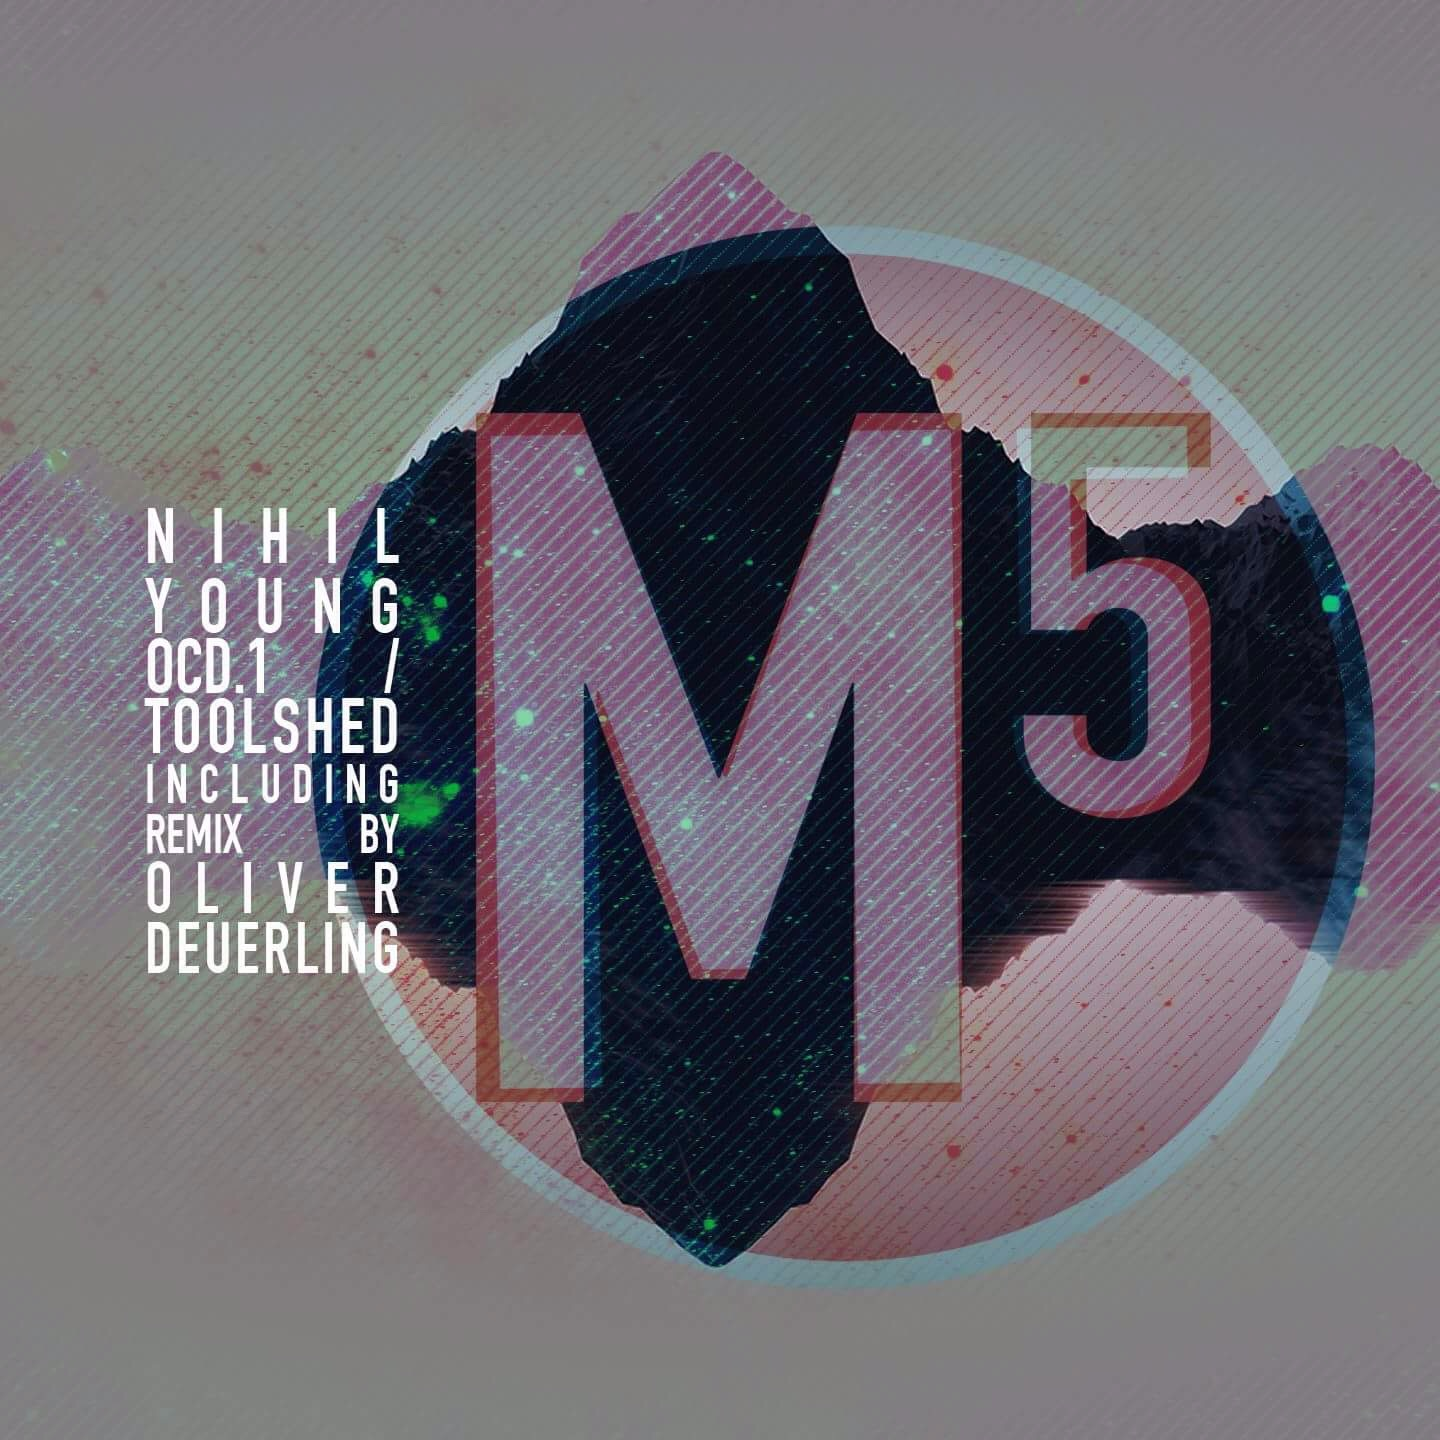 M5R001 - Nihil Young/Less Hate - OCD.1/Toolshed - w/ Oliver Deuerling Remix